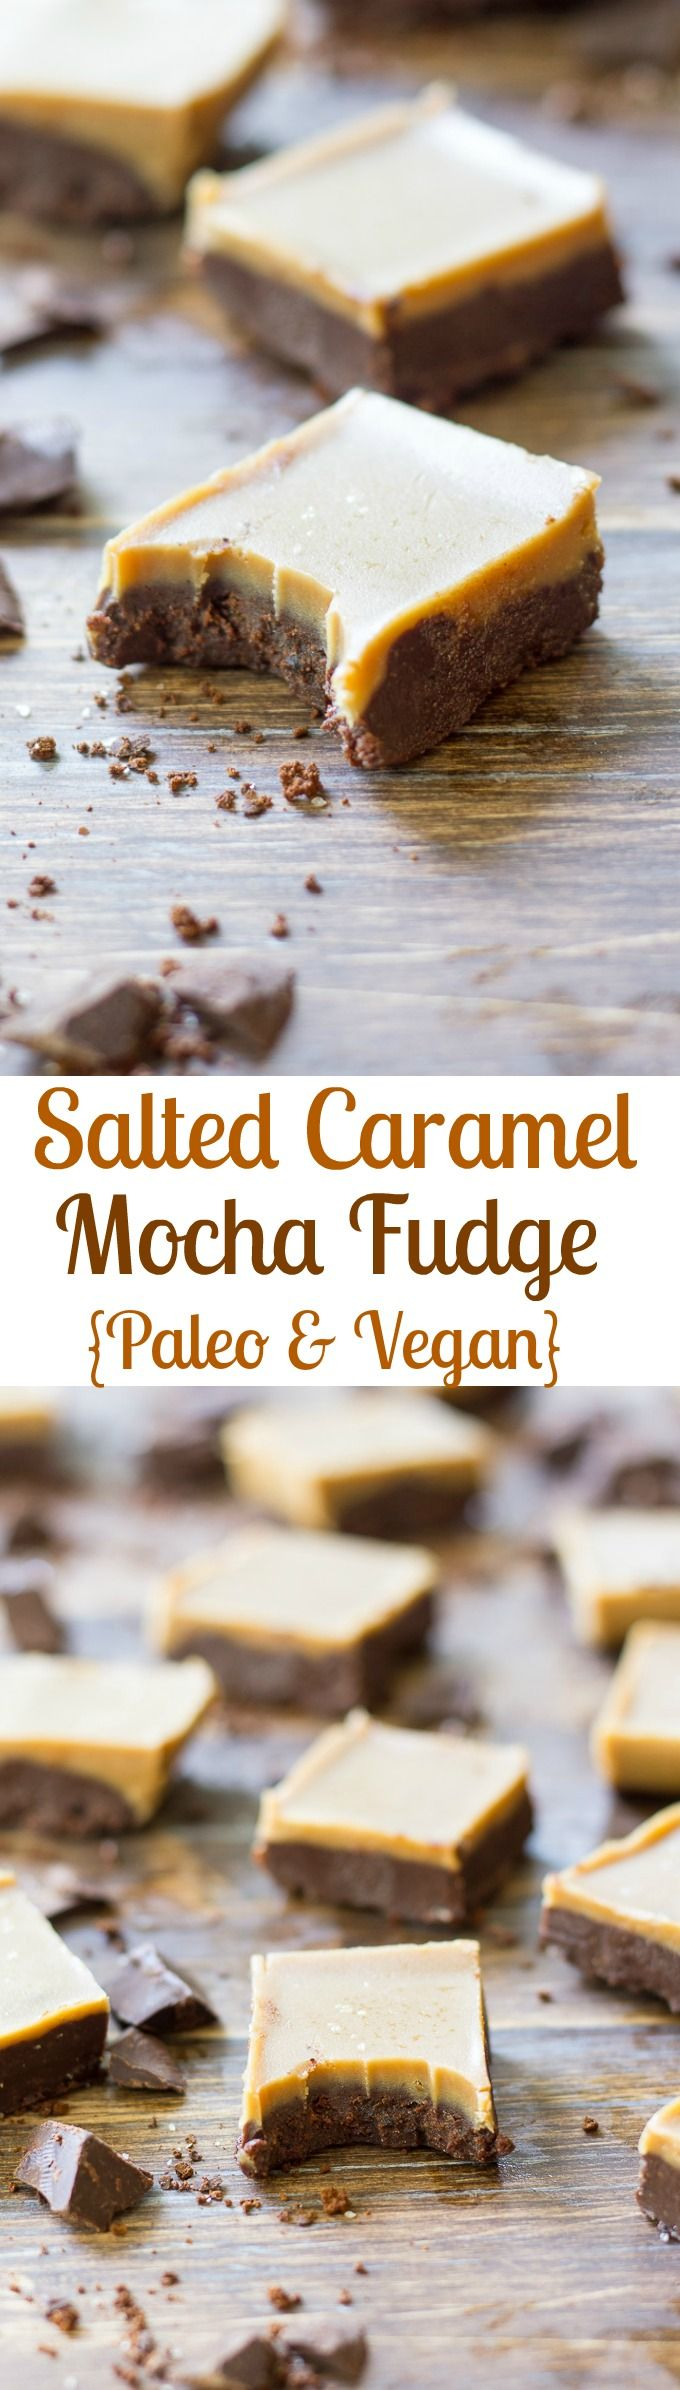 Salted caramel mocha fudge - Paleo & Vegan.  Insanely delicious vegan and Paleo dessert with two layers - mocha and salted caramel.  Rich, creamy, perfectly addicting fudge!